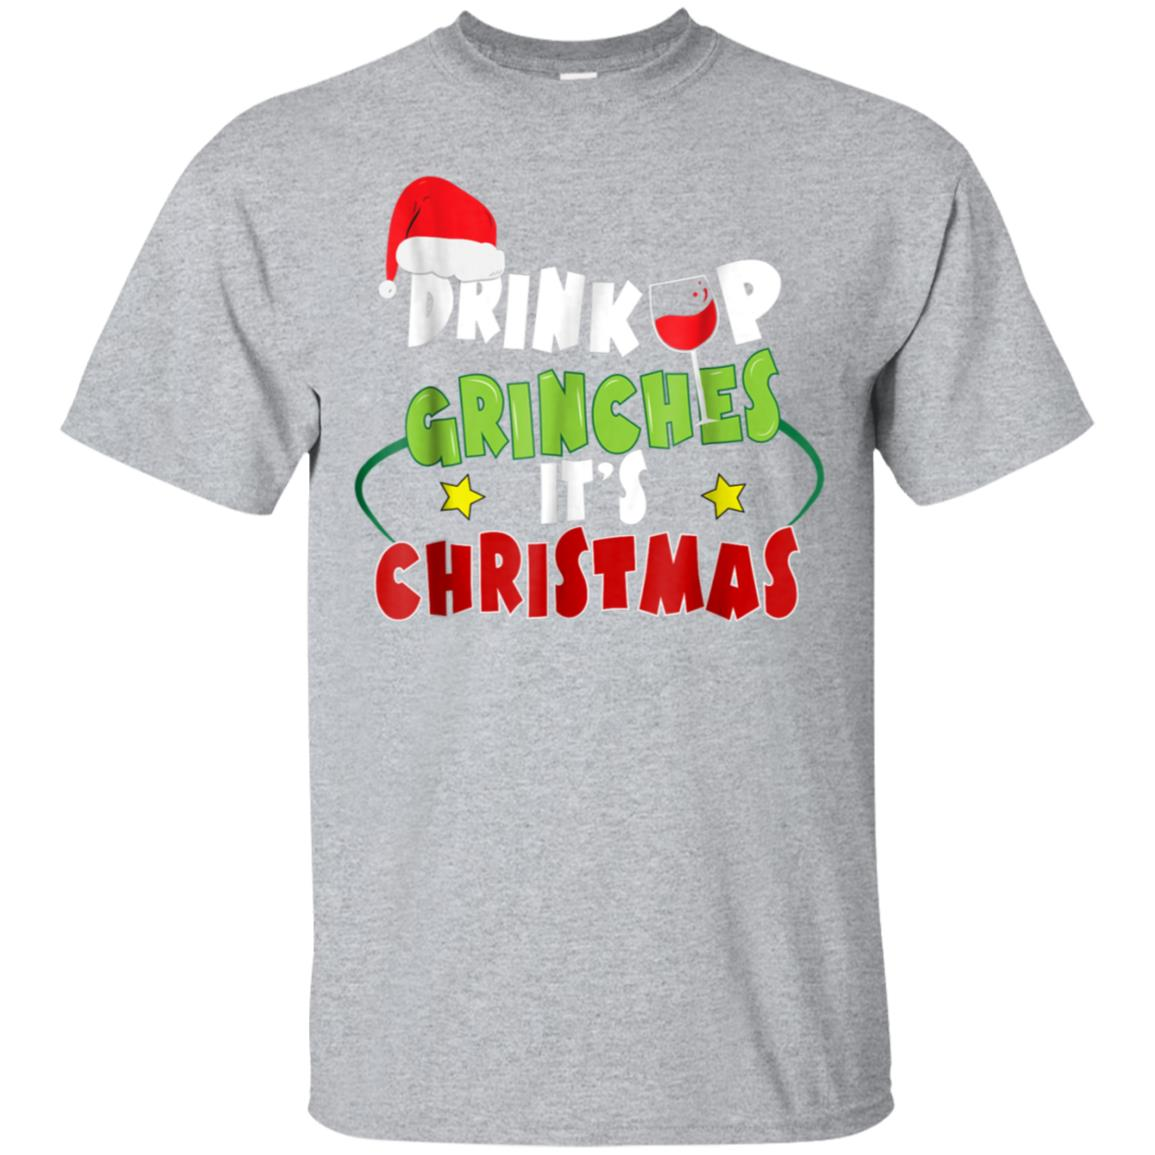 Drink Up Grin ches It's Christmas Funny T-Shirt